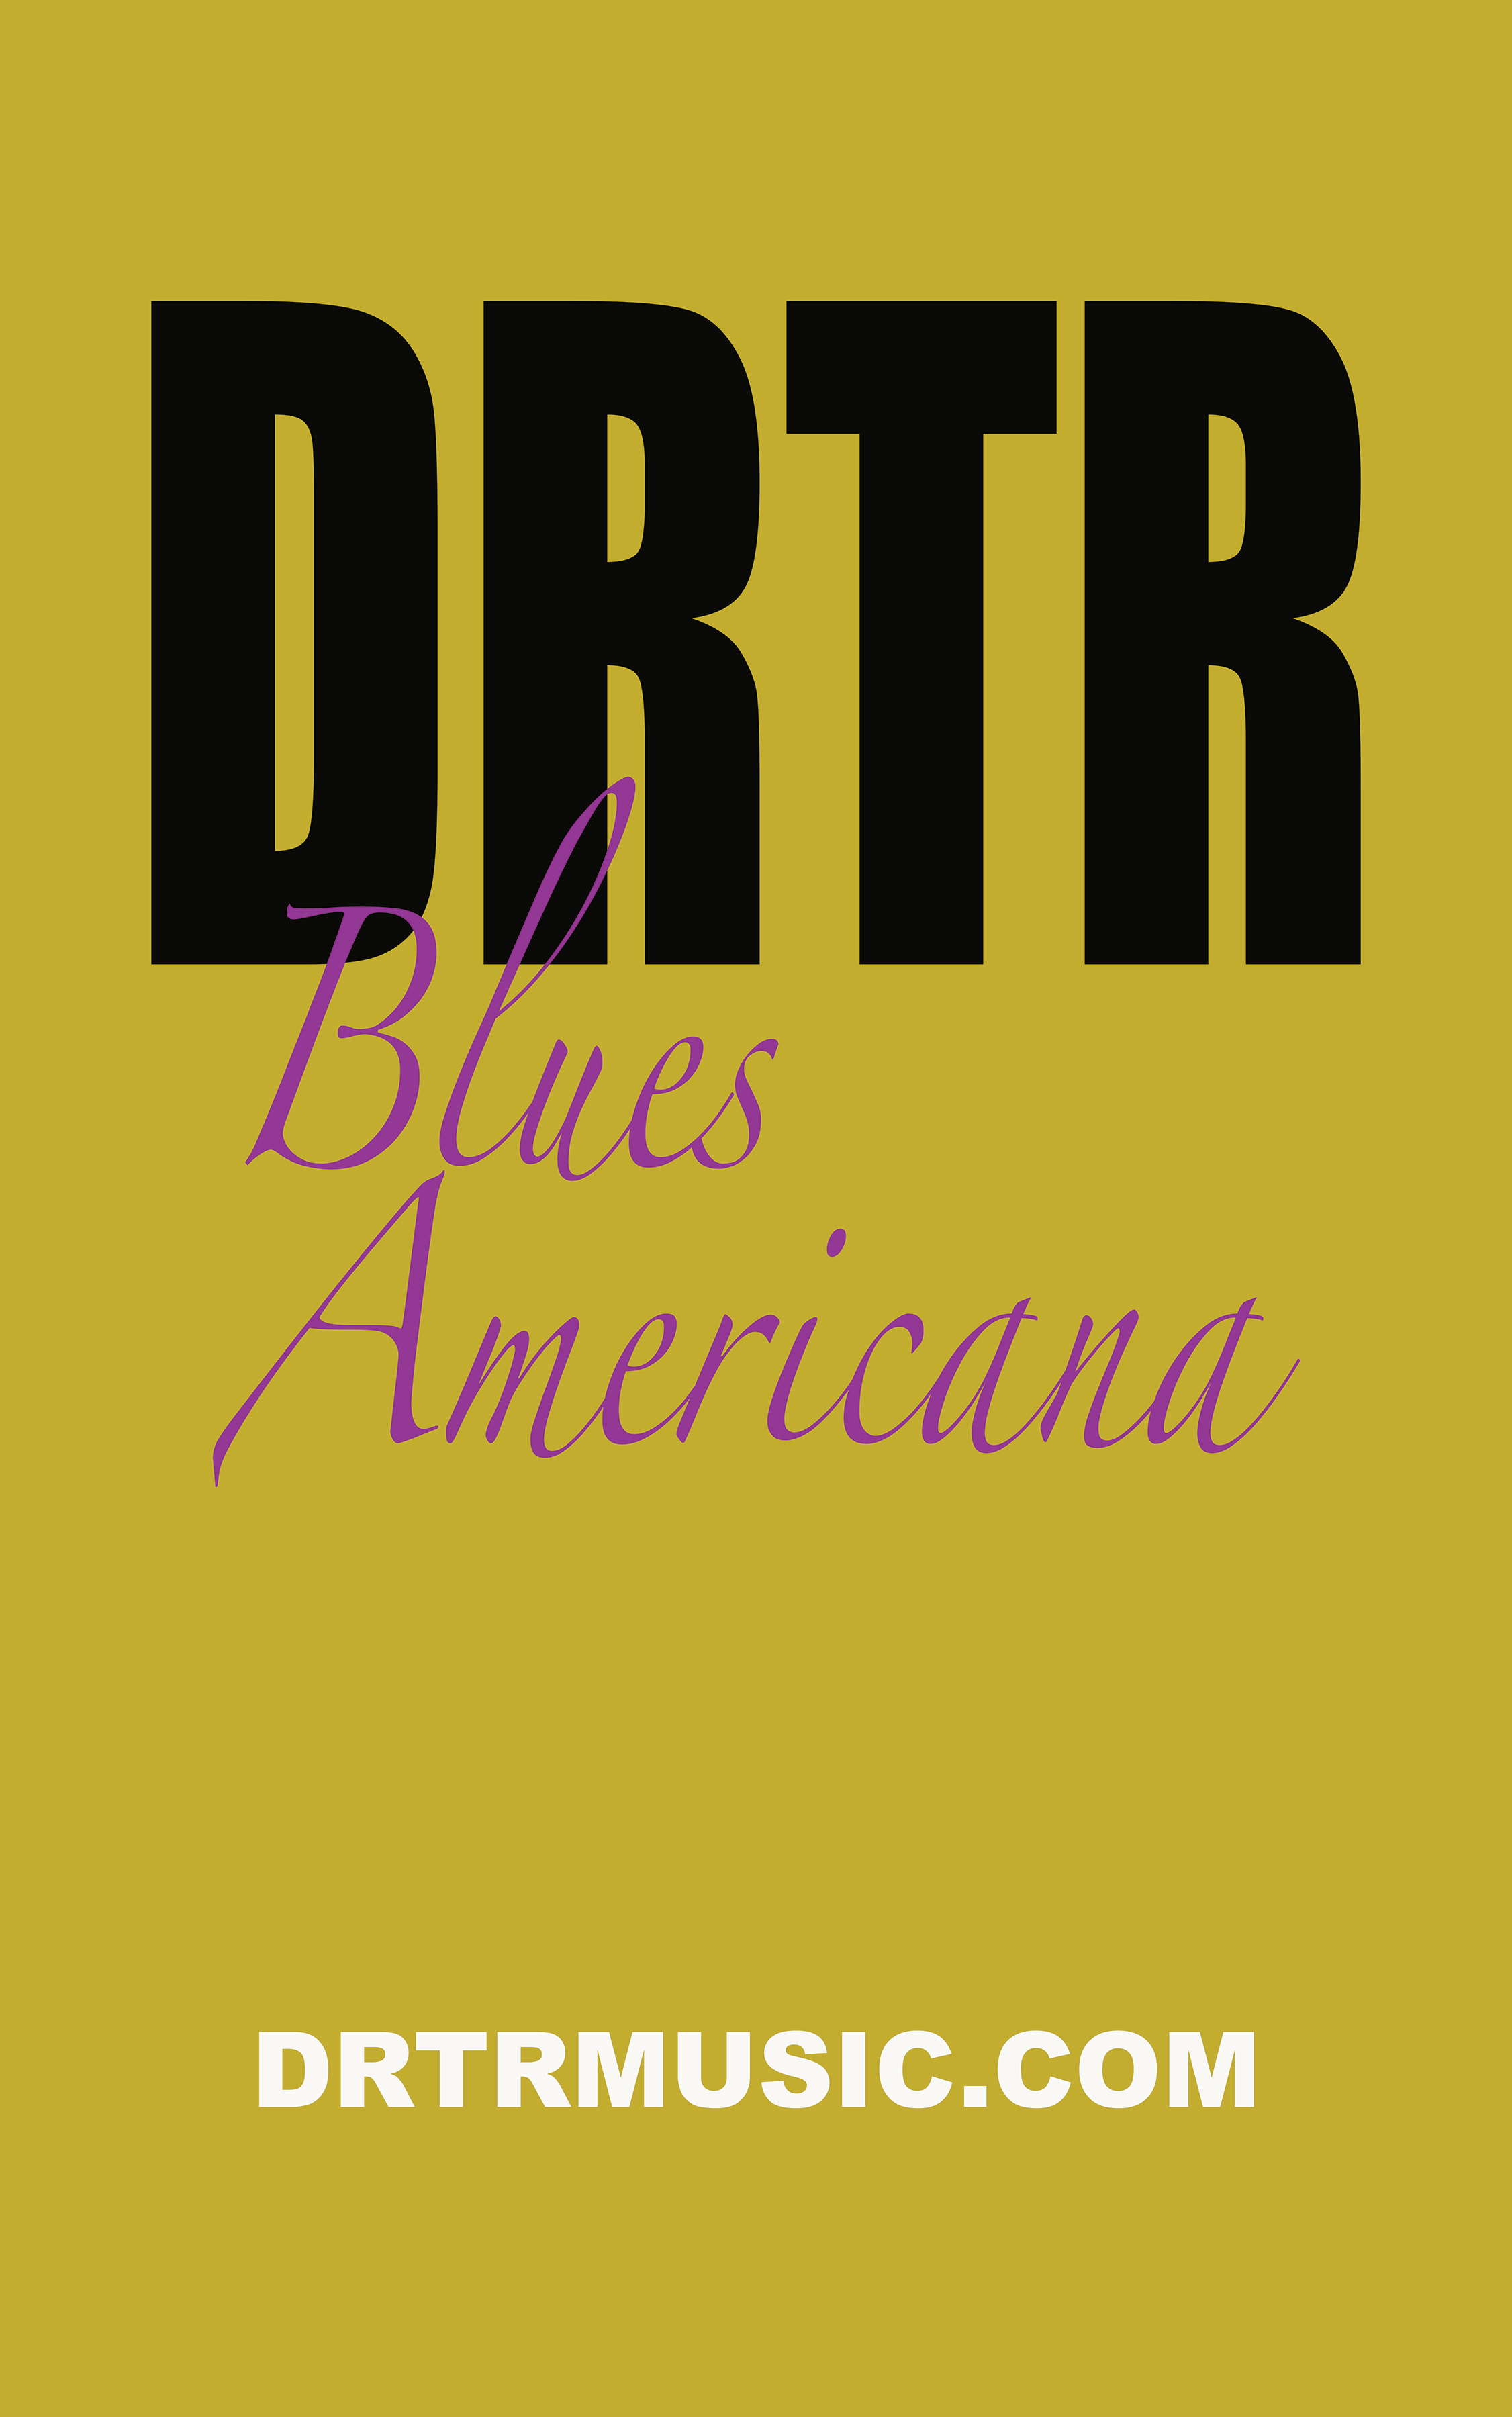 DRTR vertical banner copy